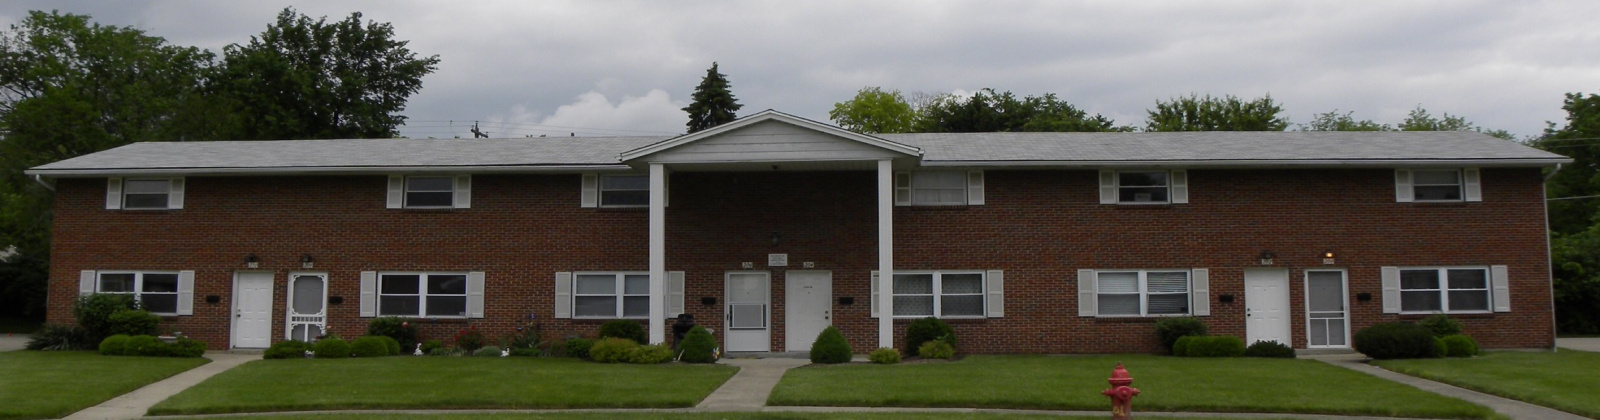 FRANKLIN,Ohio,2 Bedrooms Bedrooms,1 BathroomBathrooms,Apartment,1011